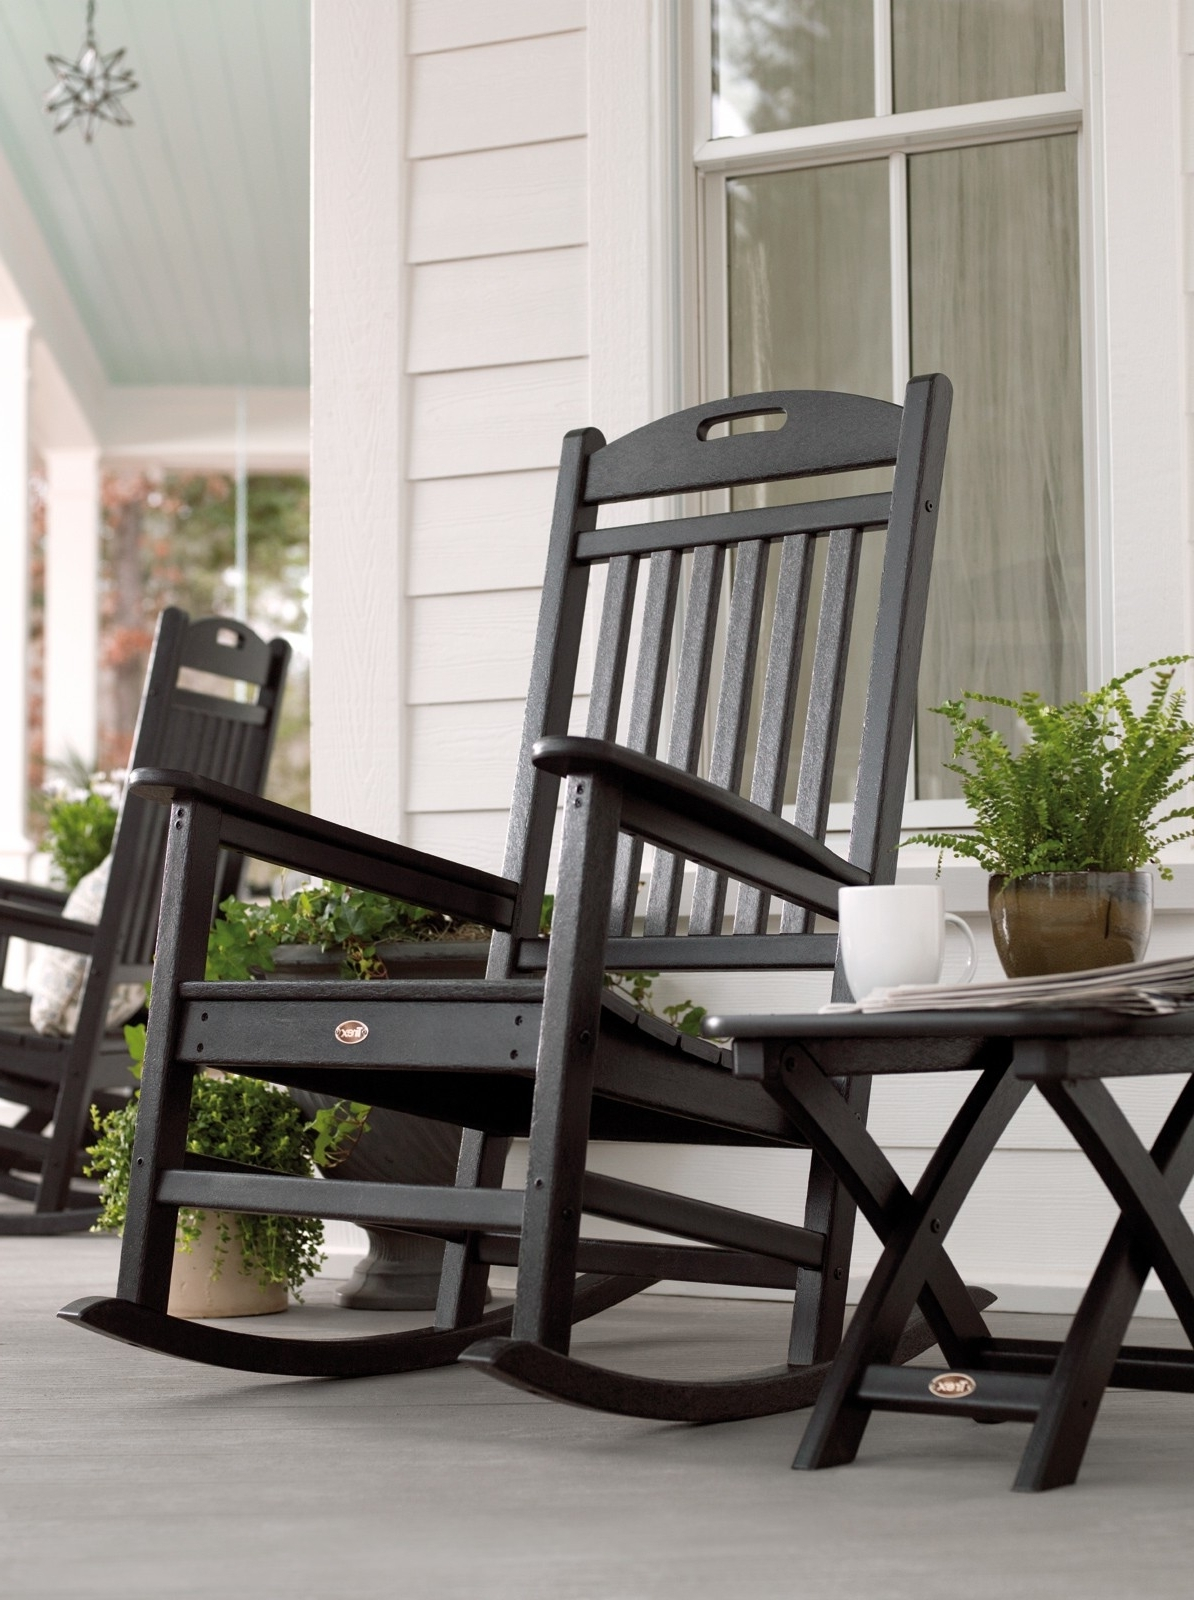 Preferred Retro Outdoor Rocking Chairs With Patio & Garden : Rocking Chairs For Outdoors Amazing Amazon Merry (View 7 of 15)